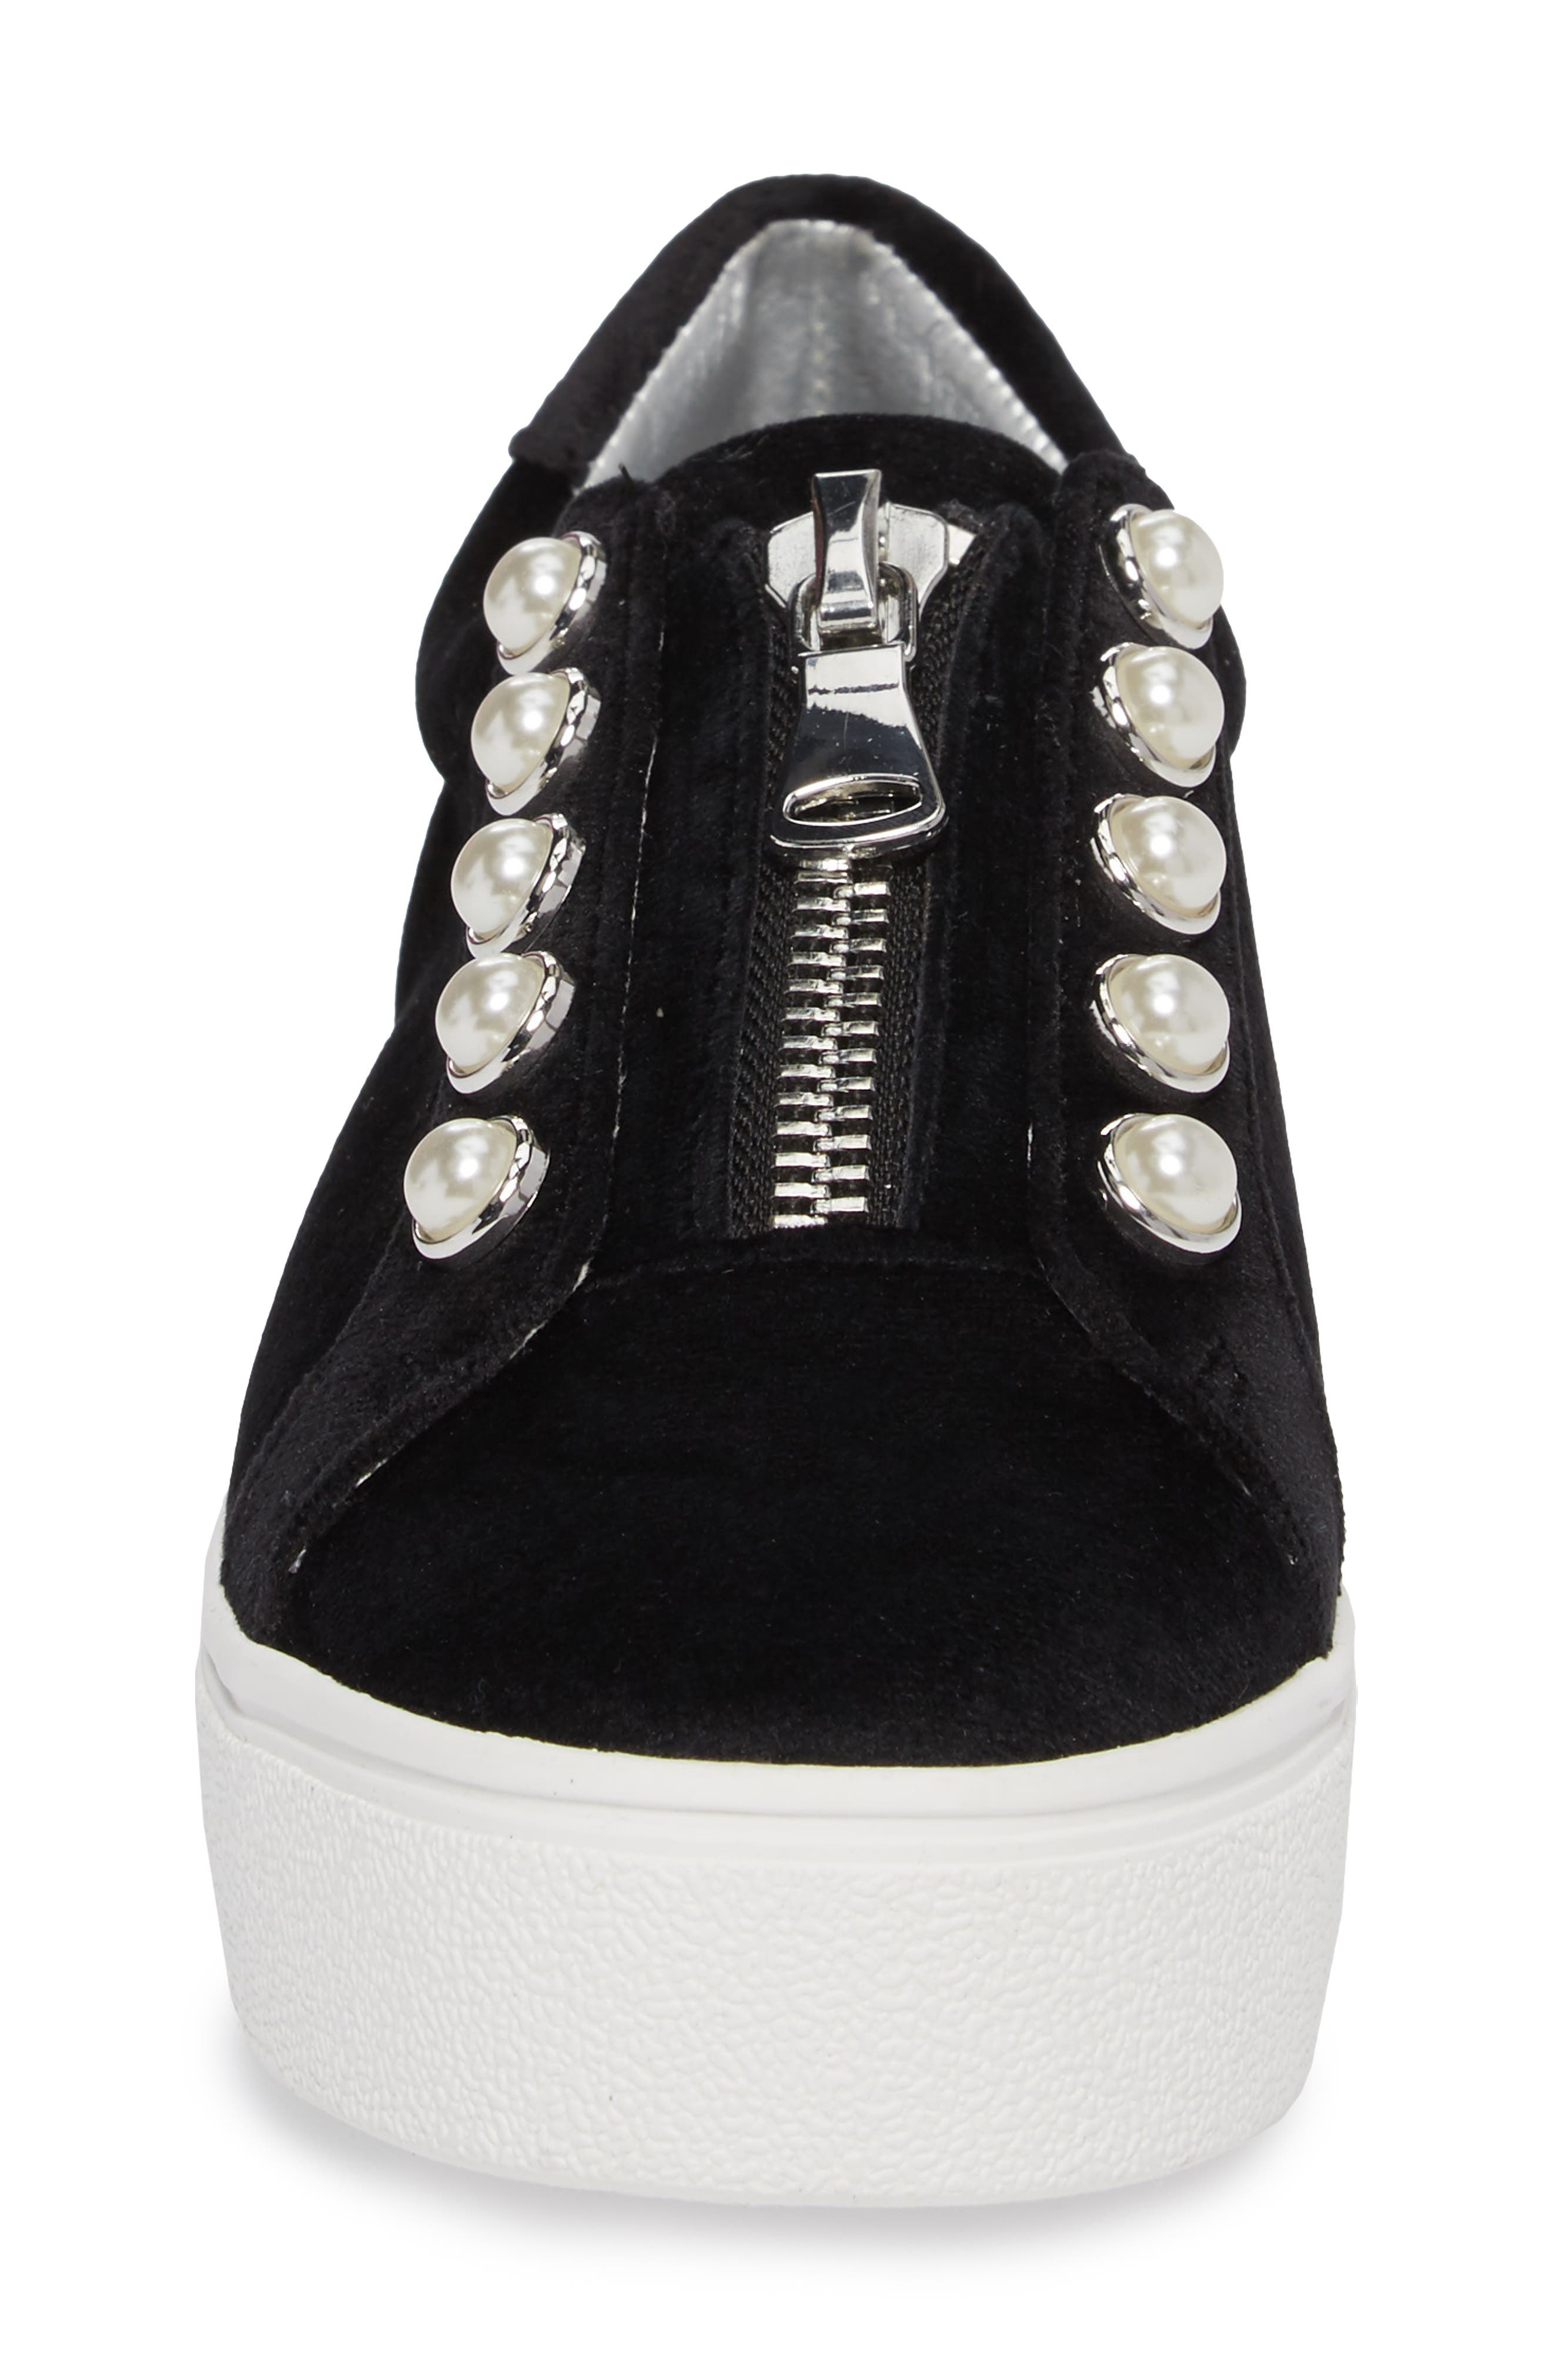 Lynn Embellished Platform Sneaker,                             Alternate thumbnail 4, color,                             Black Velvet